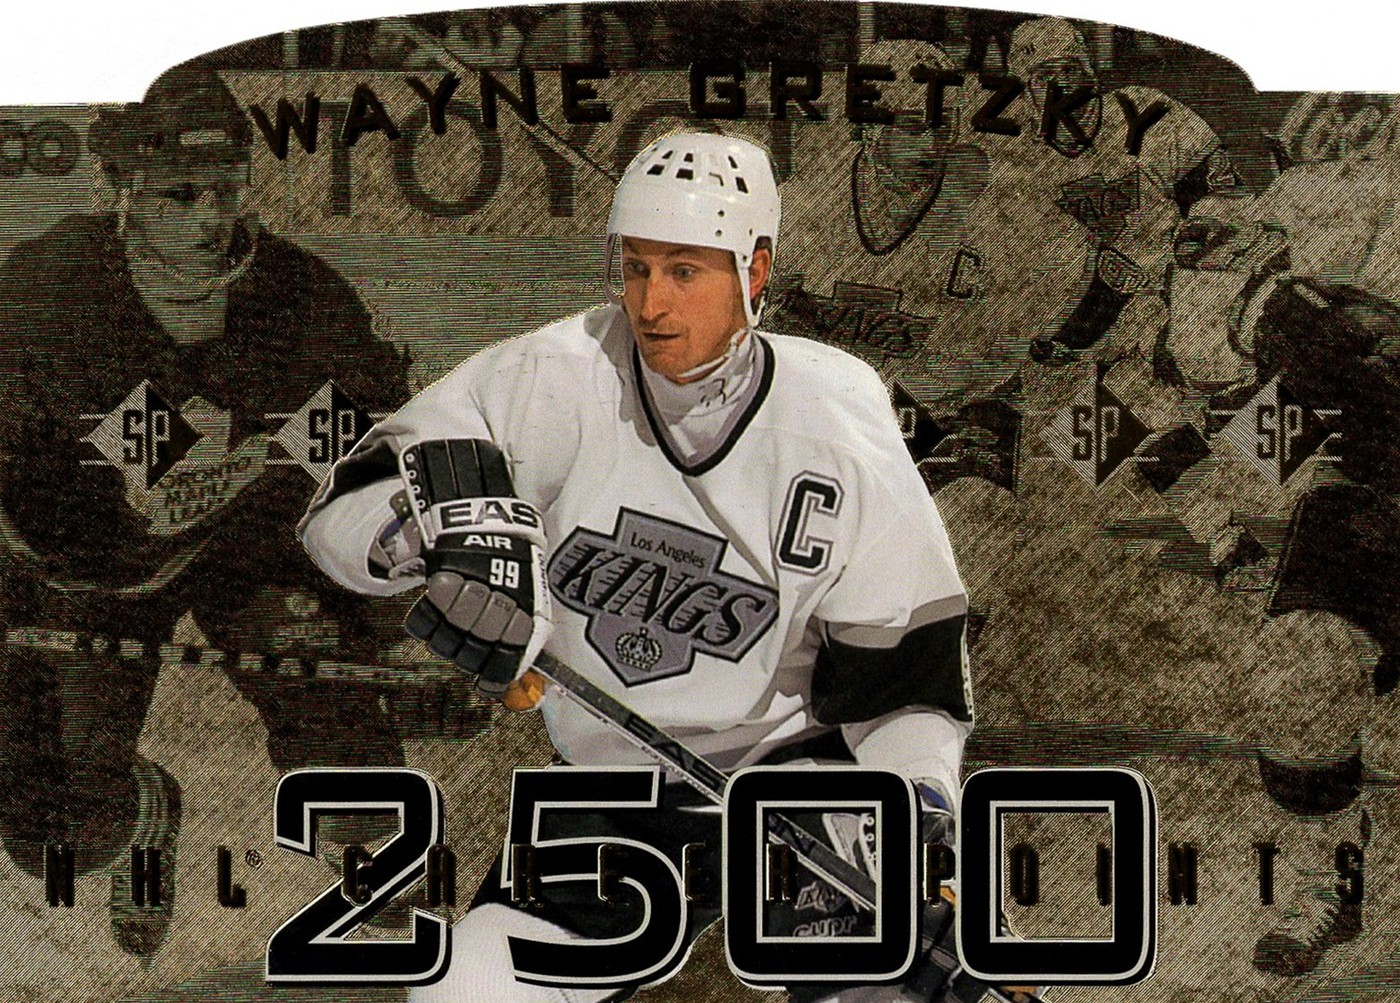 1995 Upper Deck Authenticated Wayne Gretzky NHL 2500 Points SP (1)